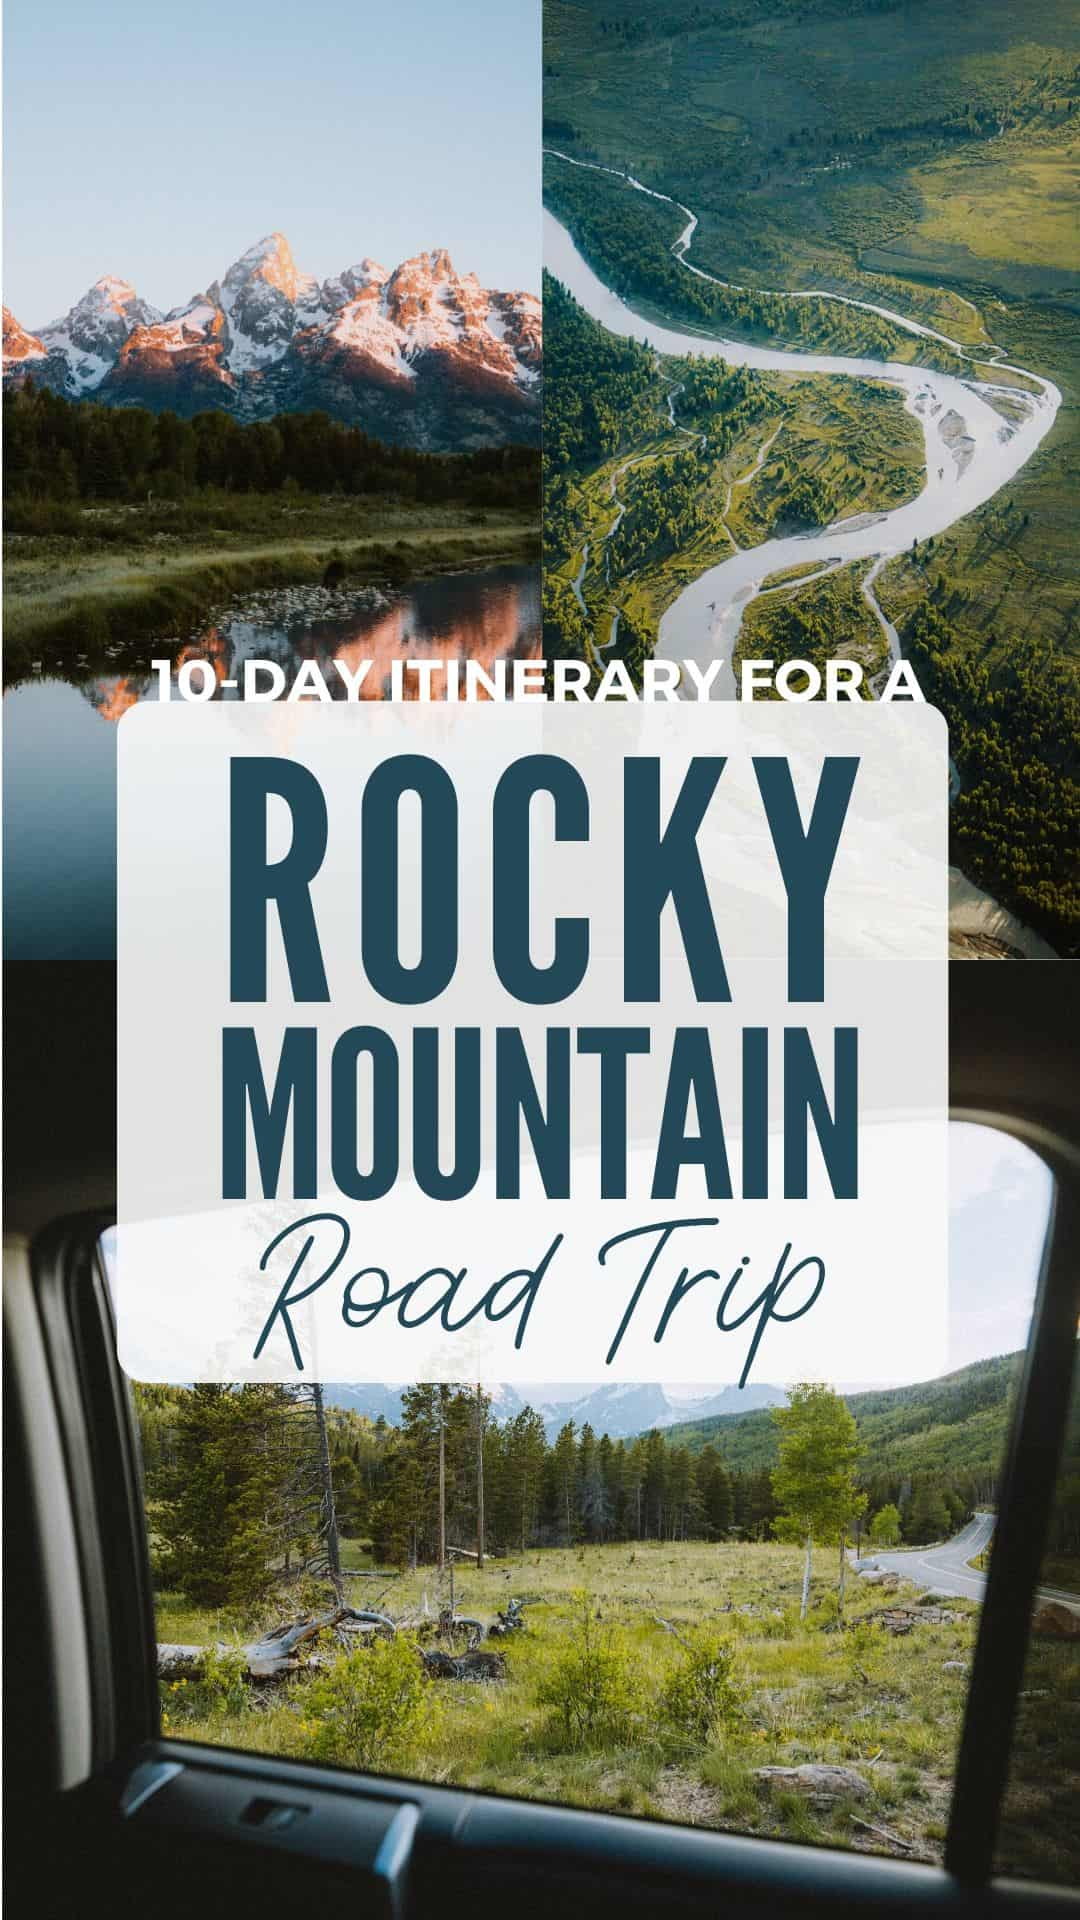 Looking for a cool summer road trip in the USA? Consider exploring the mountains with a Rocky Mountain road trip! We're sharing the best places to visit in USA and the Canadian Rocky Mountains, including 6 national parks (Rocky Mountain, Yellowstone, Grand Teton, Glacier, Banff, Jasper) and lots more! Save this post for later! #rockymountains #canadianrockies #roadtrip #USA #adventure #photography #nationalparks #themandagies #wyoming #colorado #denver #montana #alberta #banff #jasper